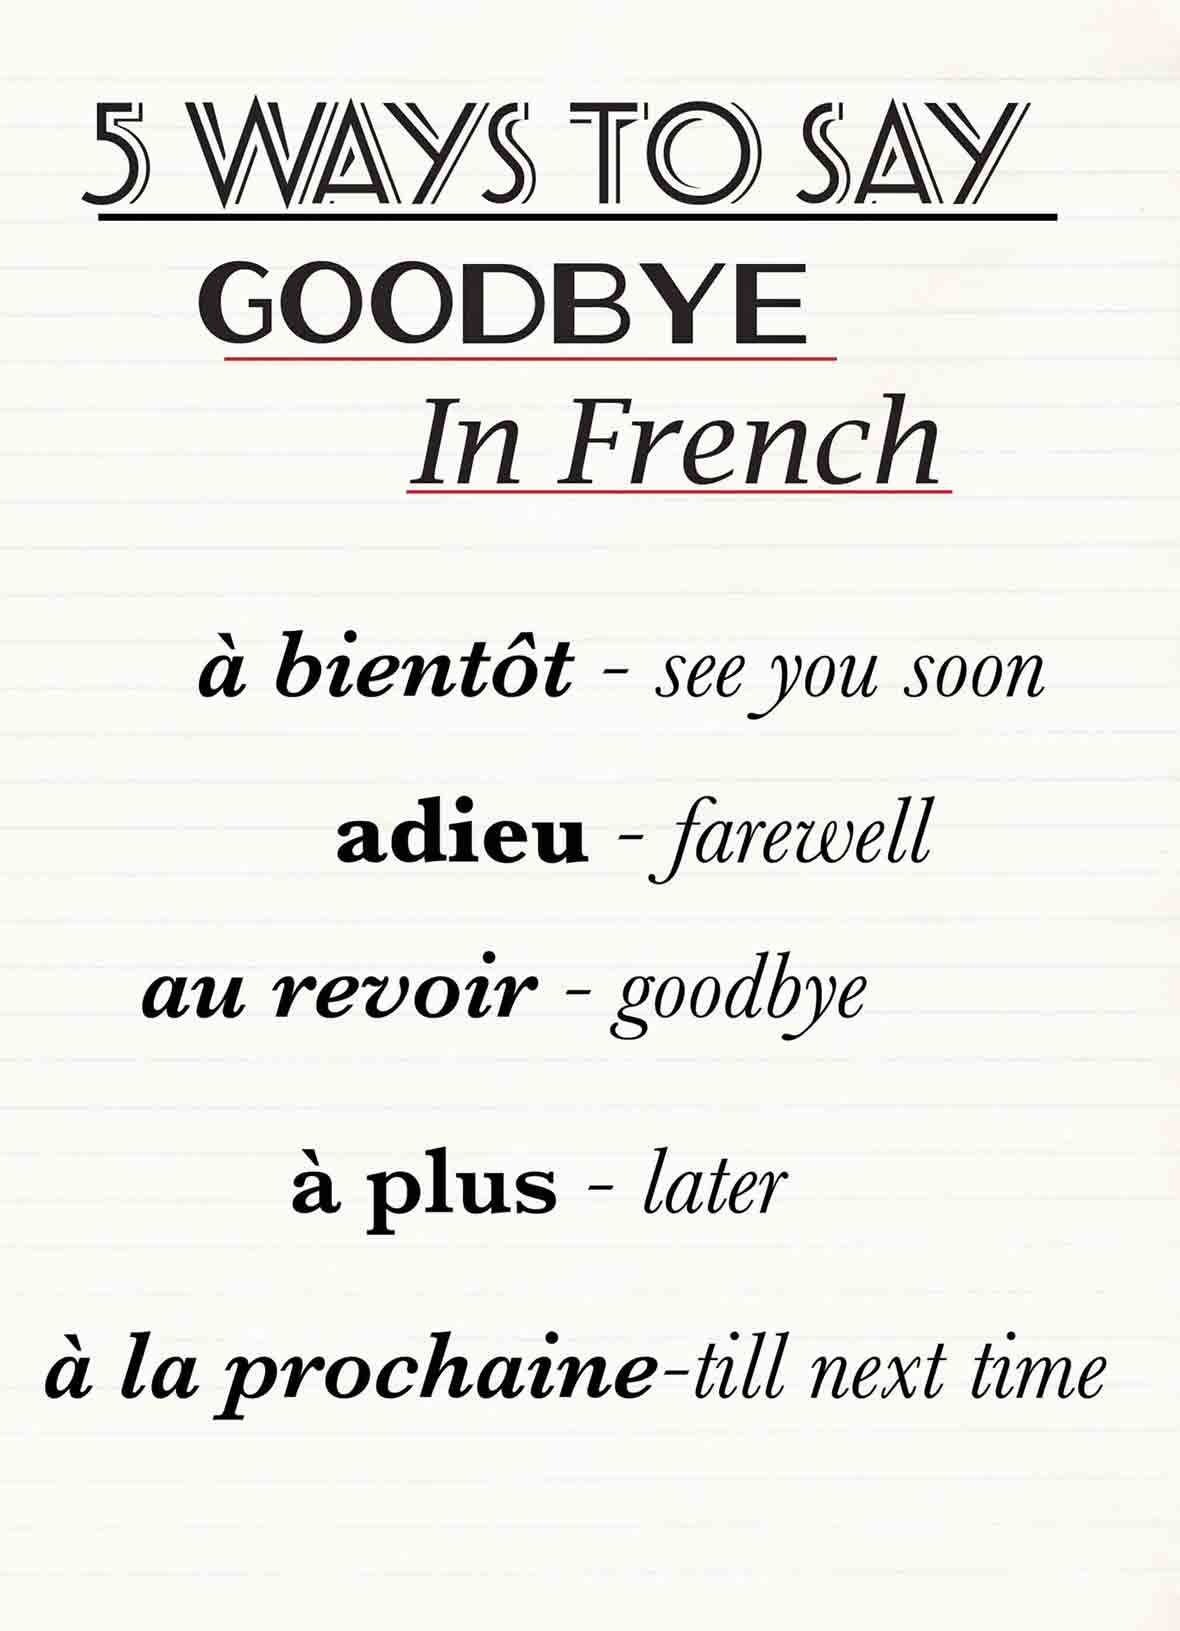 There S Also Other Phrases Like A Tout A L Heure See You In A